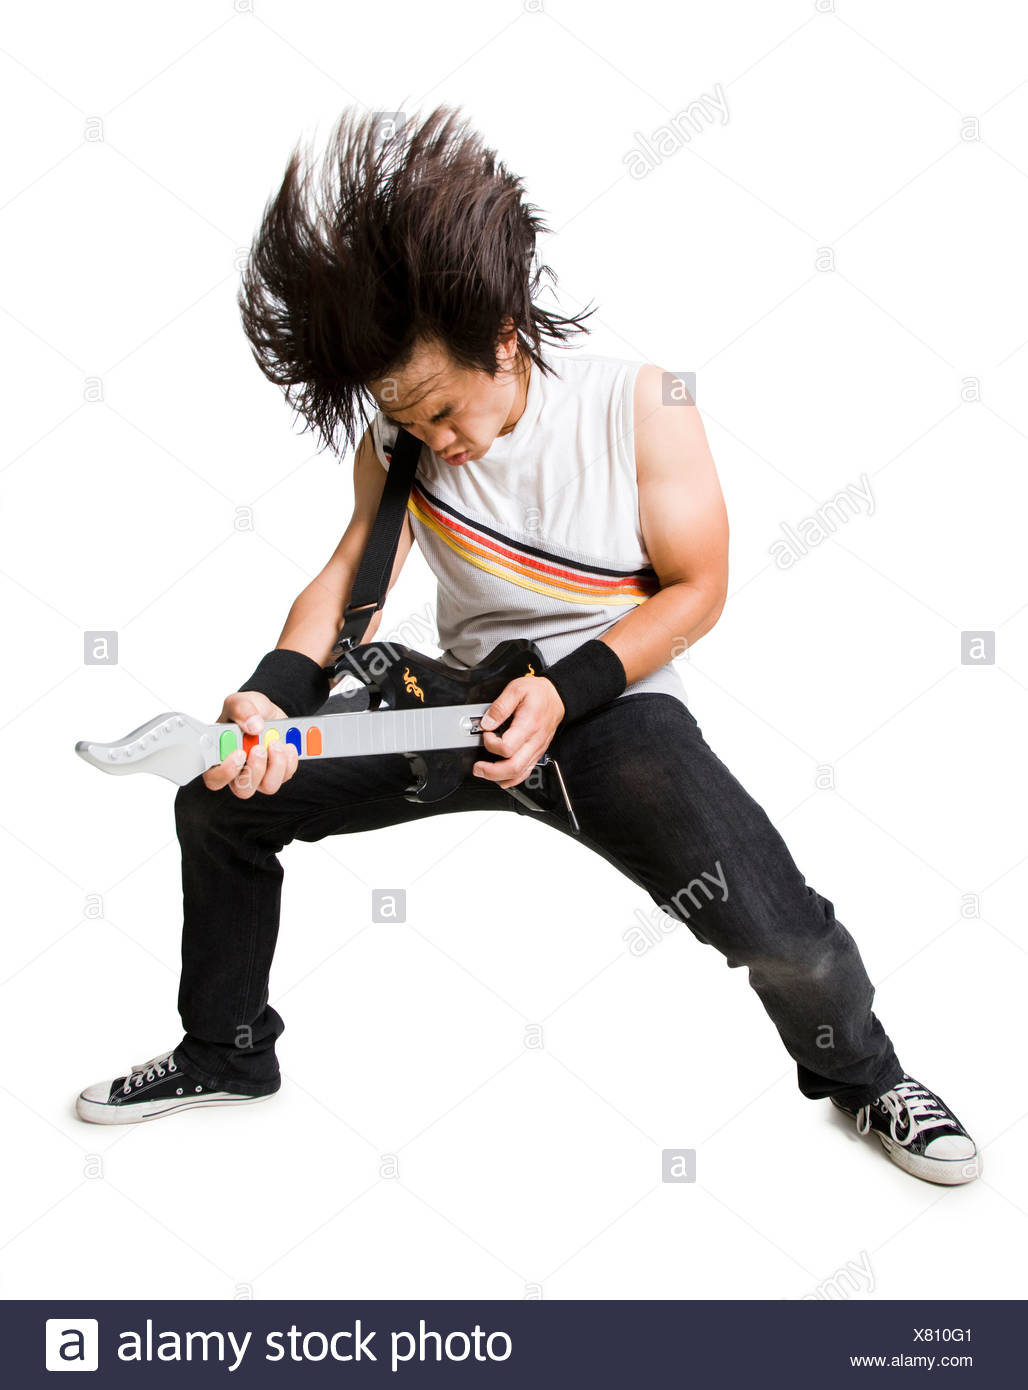 Young man playing guitar video game, portrait - Stock Image